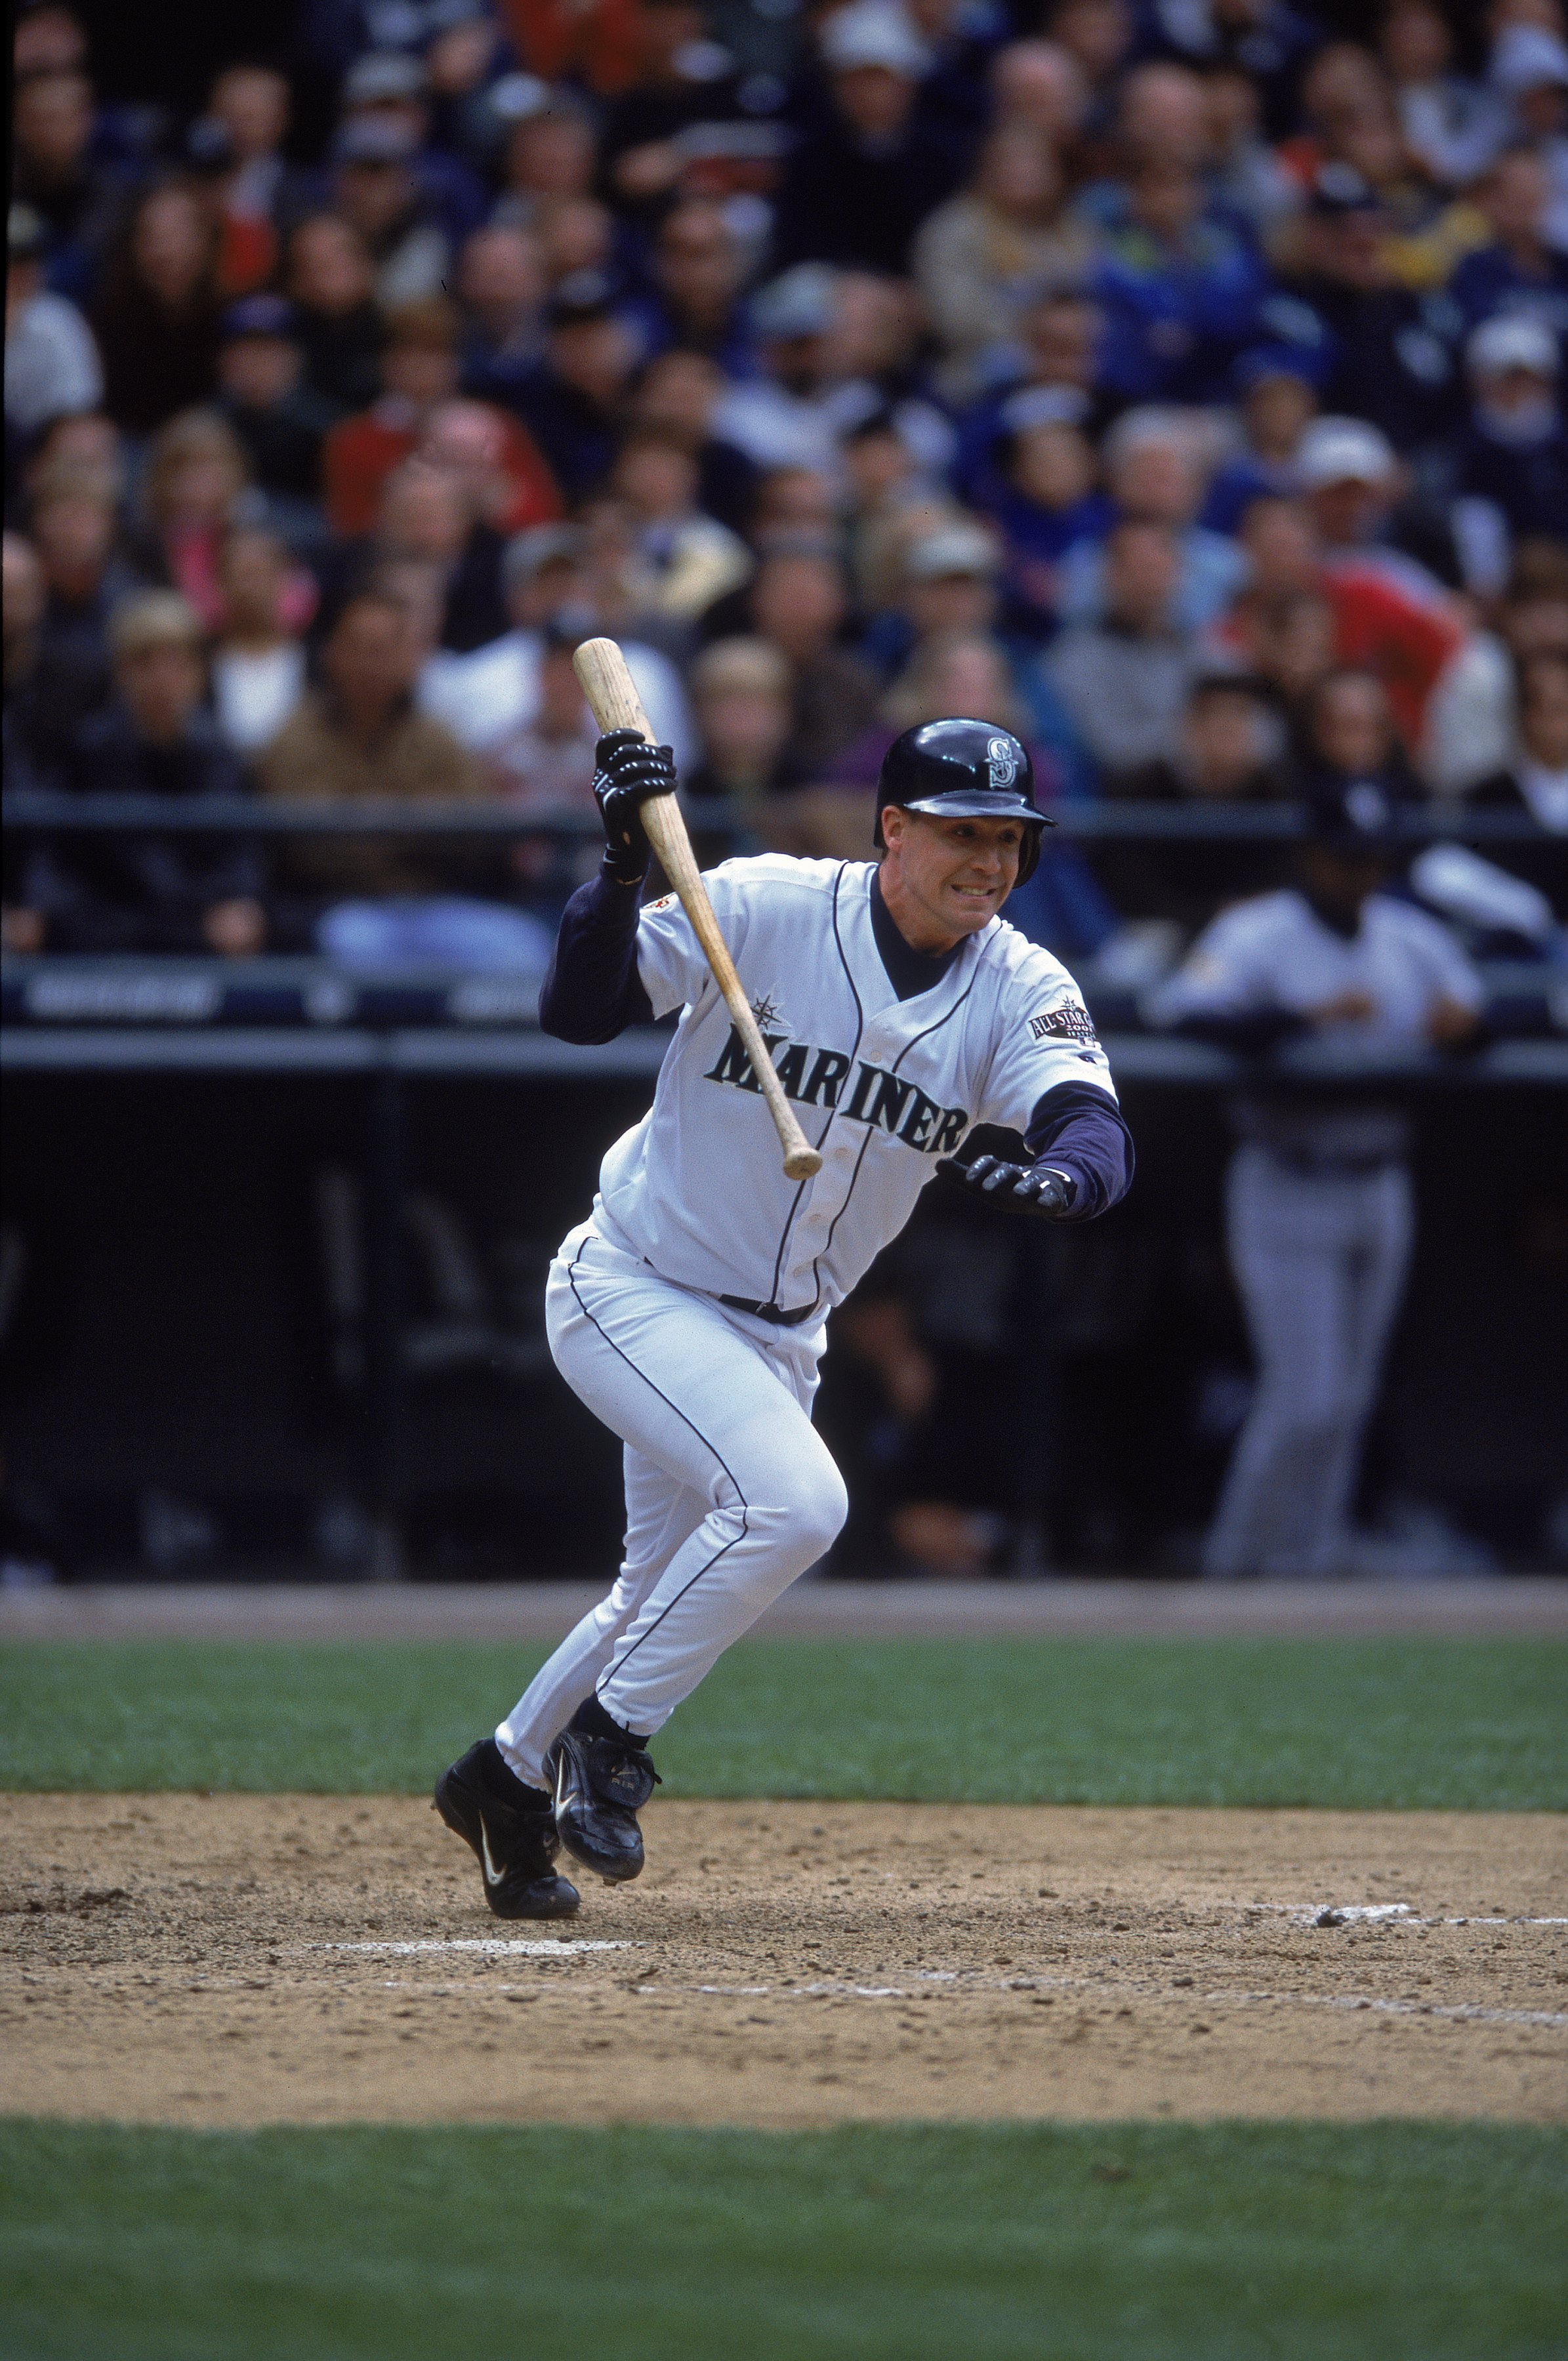 19 May 2001:  David Bell #25 of the Seattle Mariners starts to run to base after hitting the ball during the game against the New York Yankees at Safeco Field in Seattle, Washington. The Yankees defeated the Mariners 2-1.Mandatory Credit: Otto Greule Jr